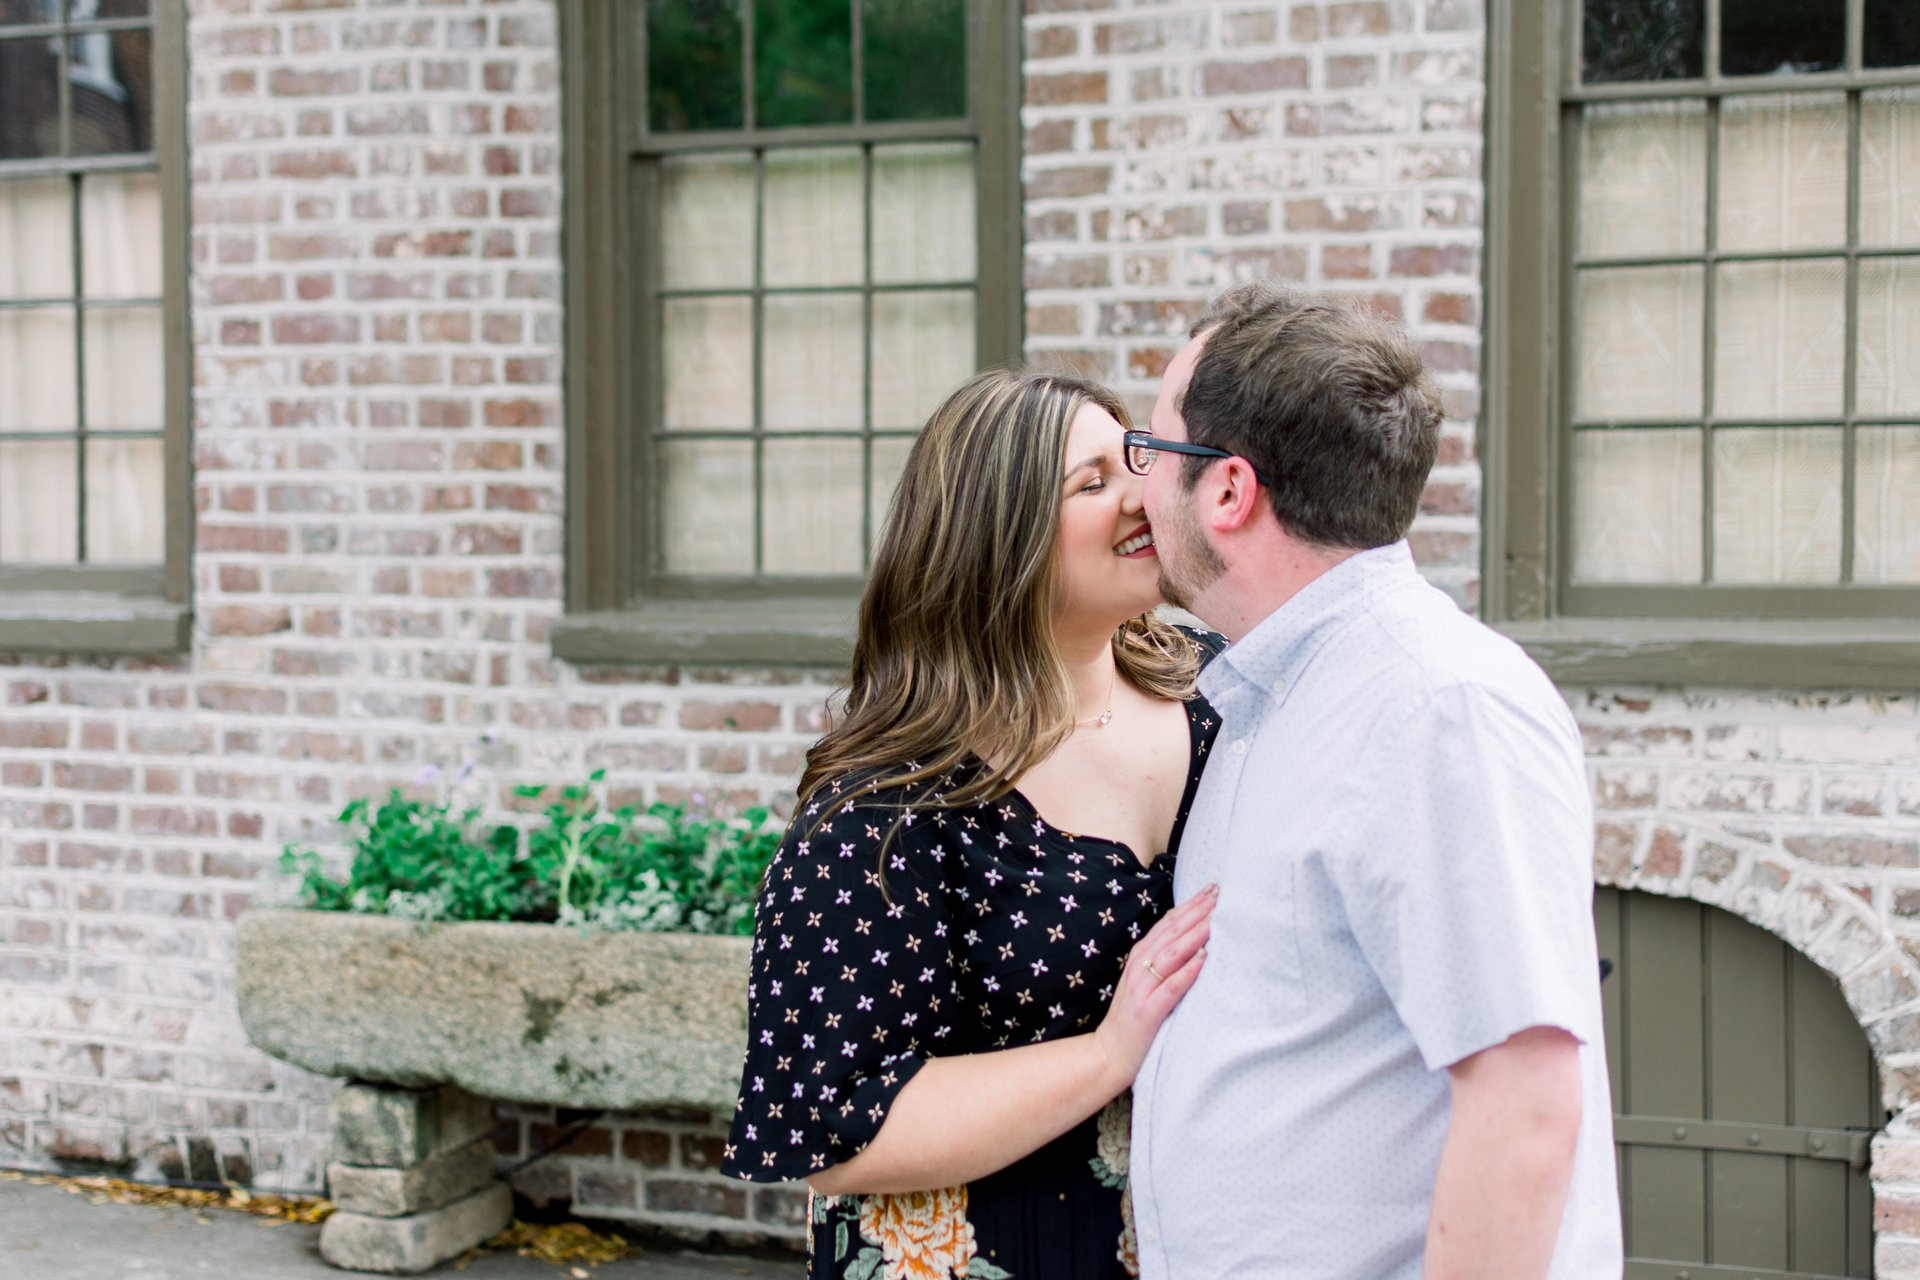 Charleston-USA-travel-story-Flytographer-1